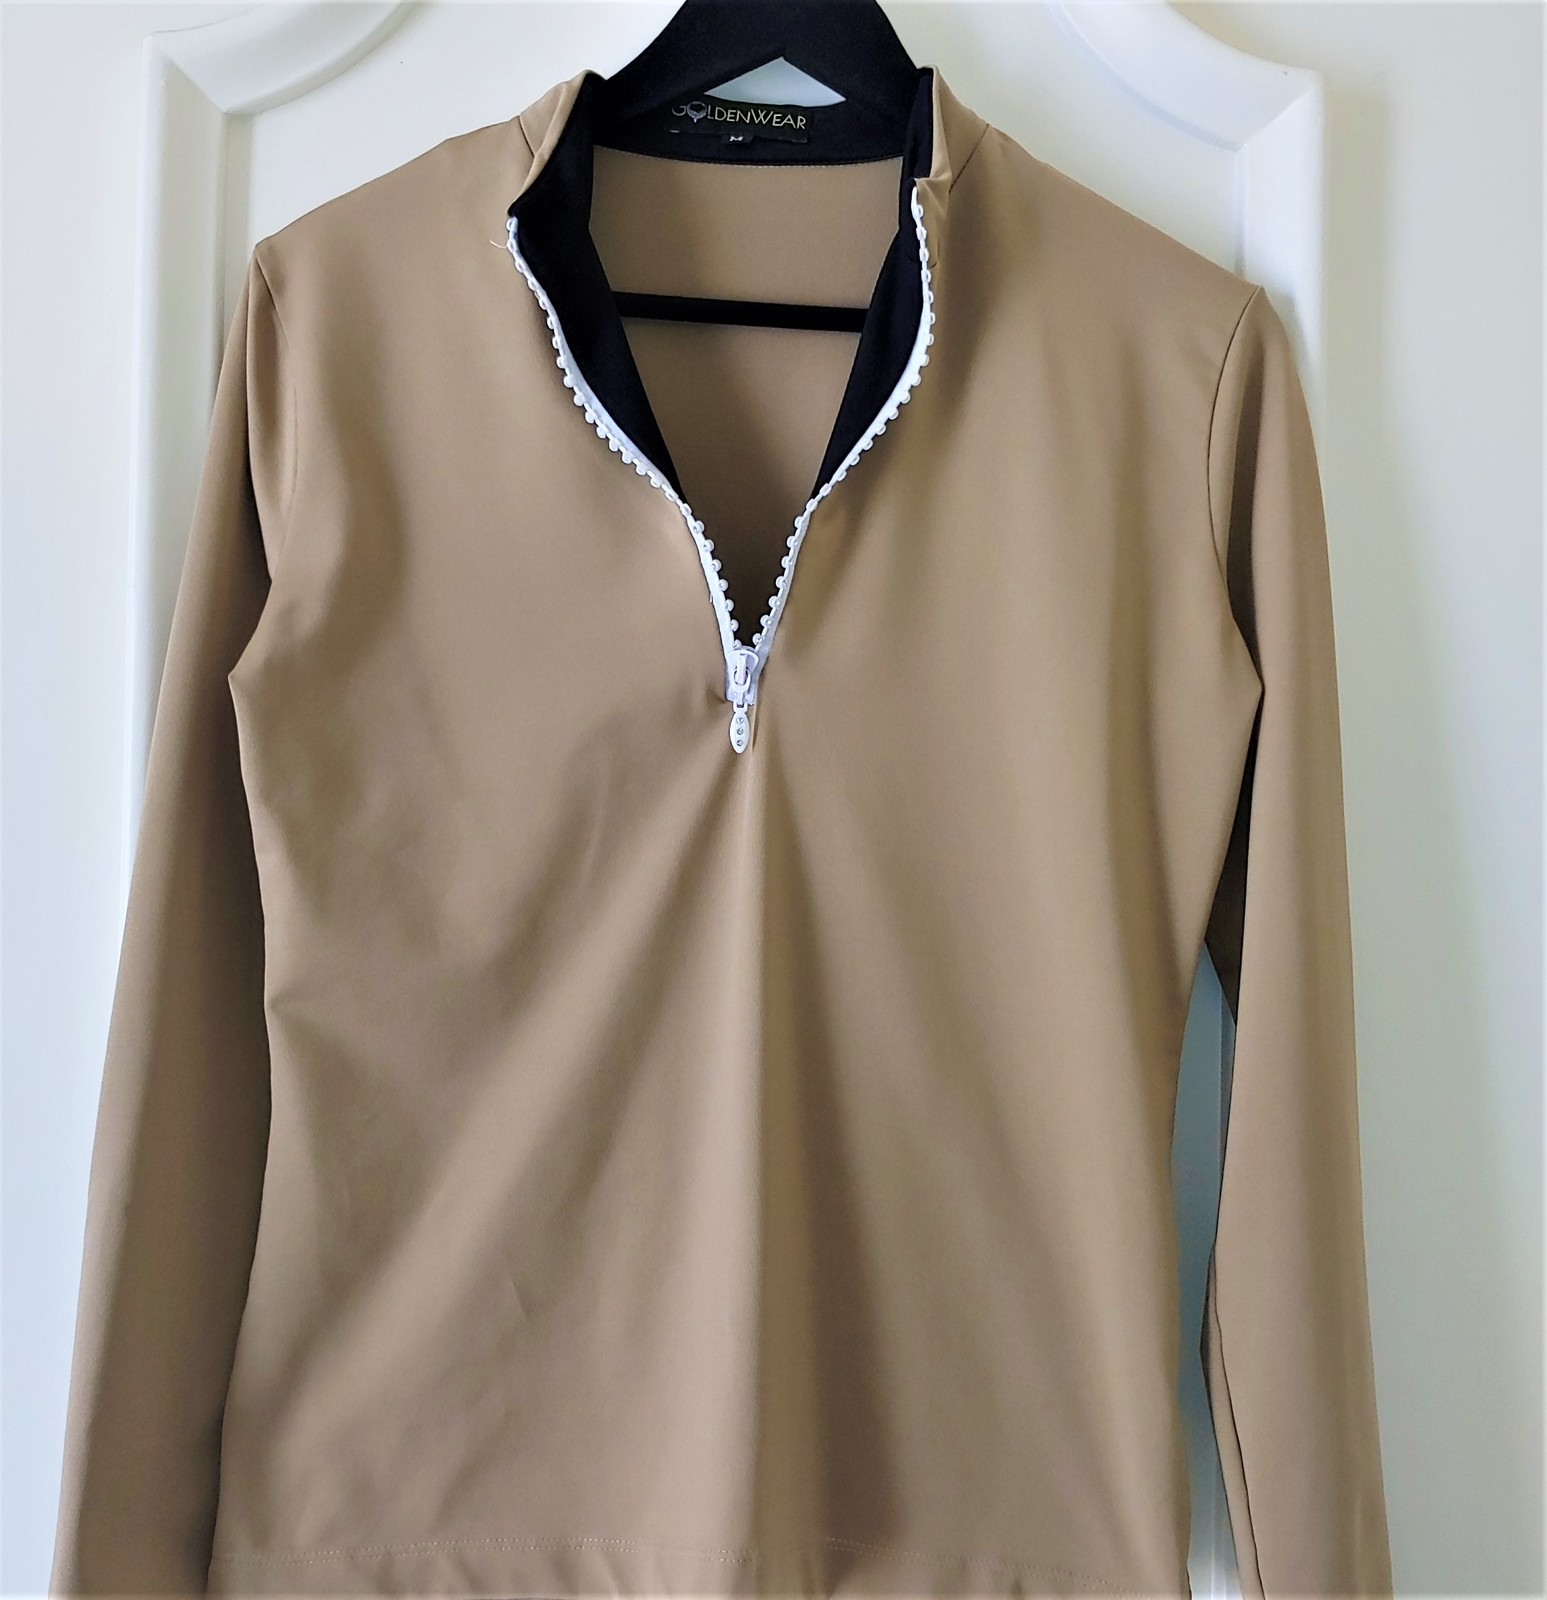 Stylish Women's Golf & Casual Tan Long Sleeve Mock Polo, Rhinestone Zipper